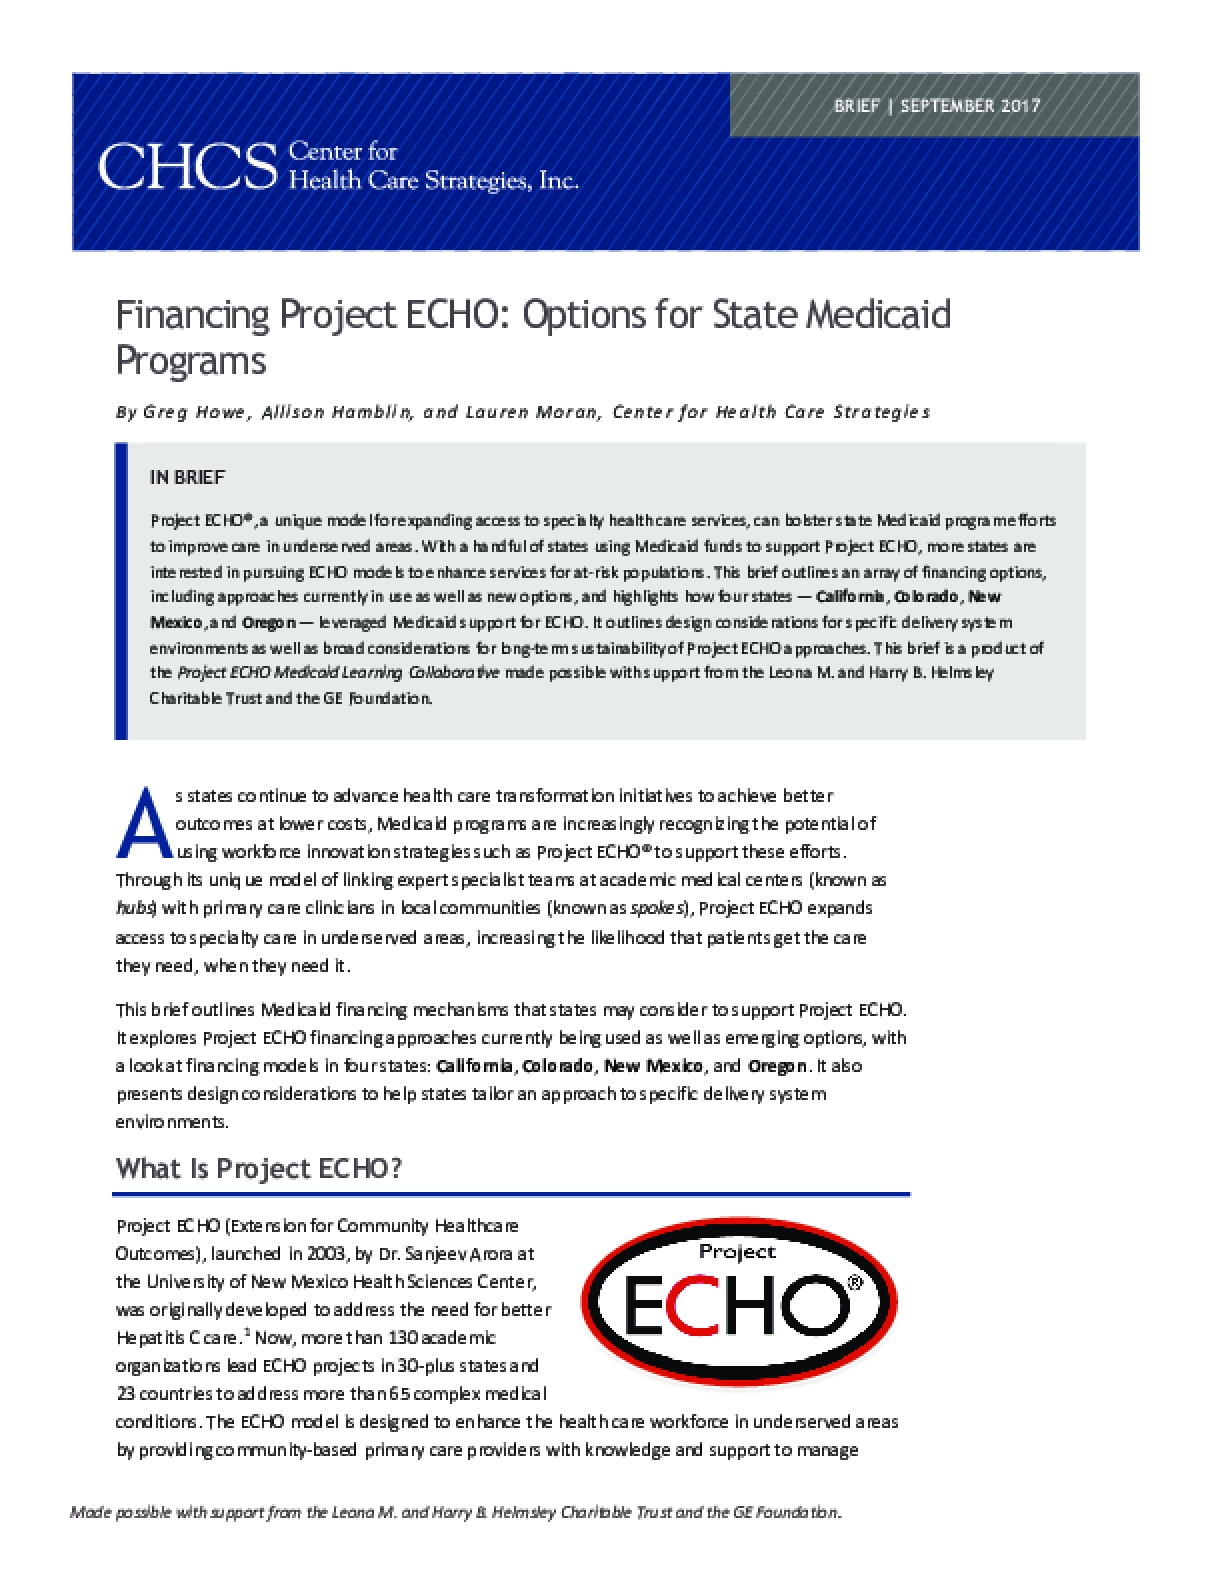 Financing Project ECHO: Options for State Medicaid Programs